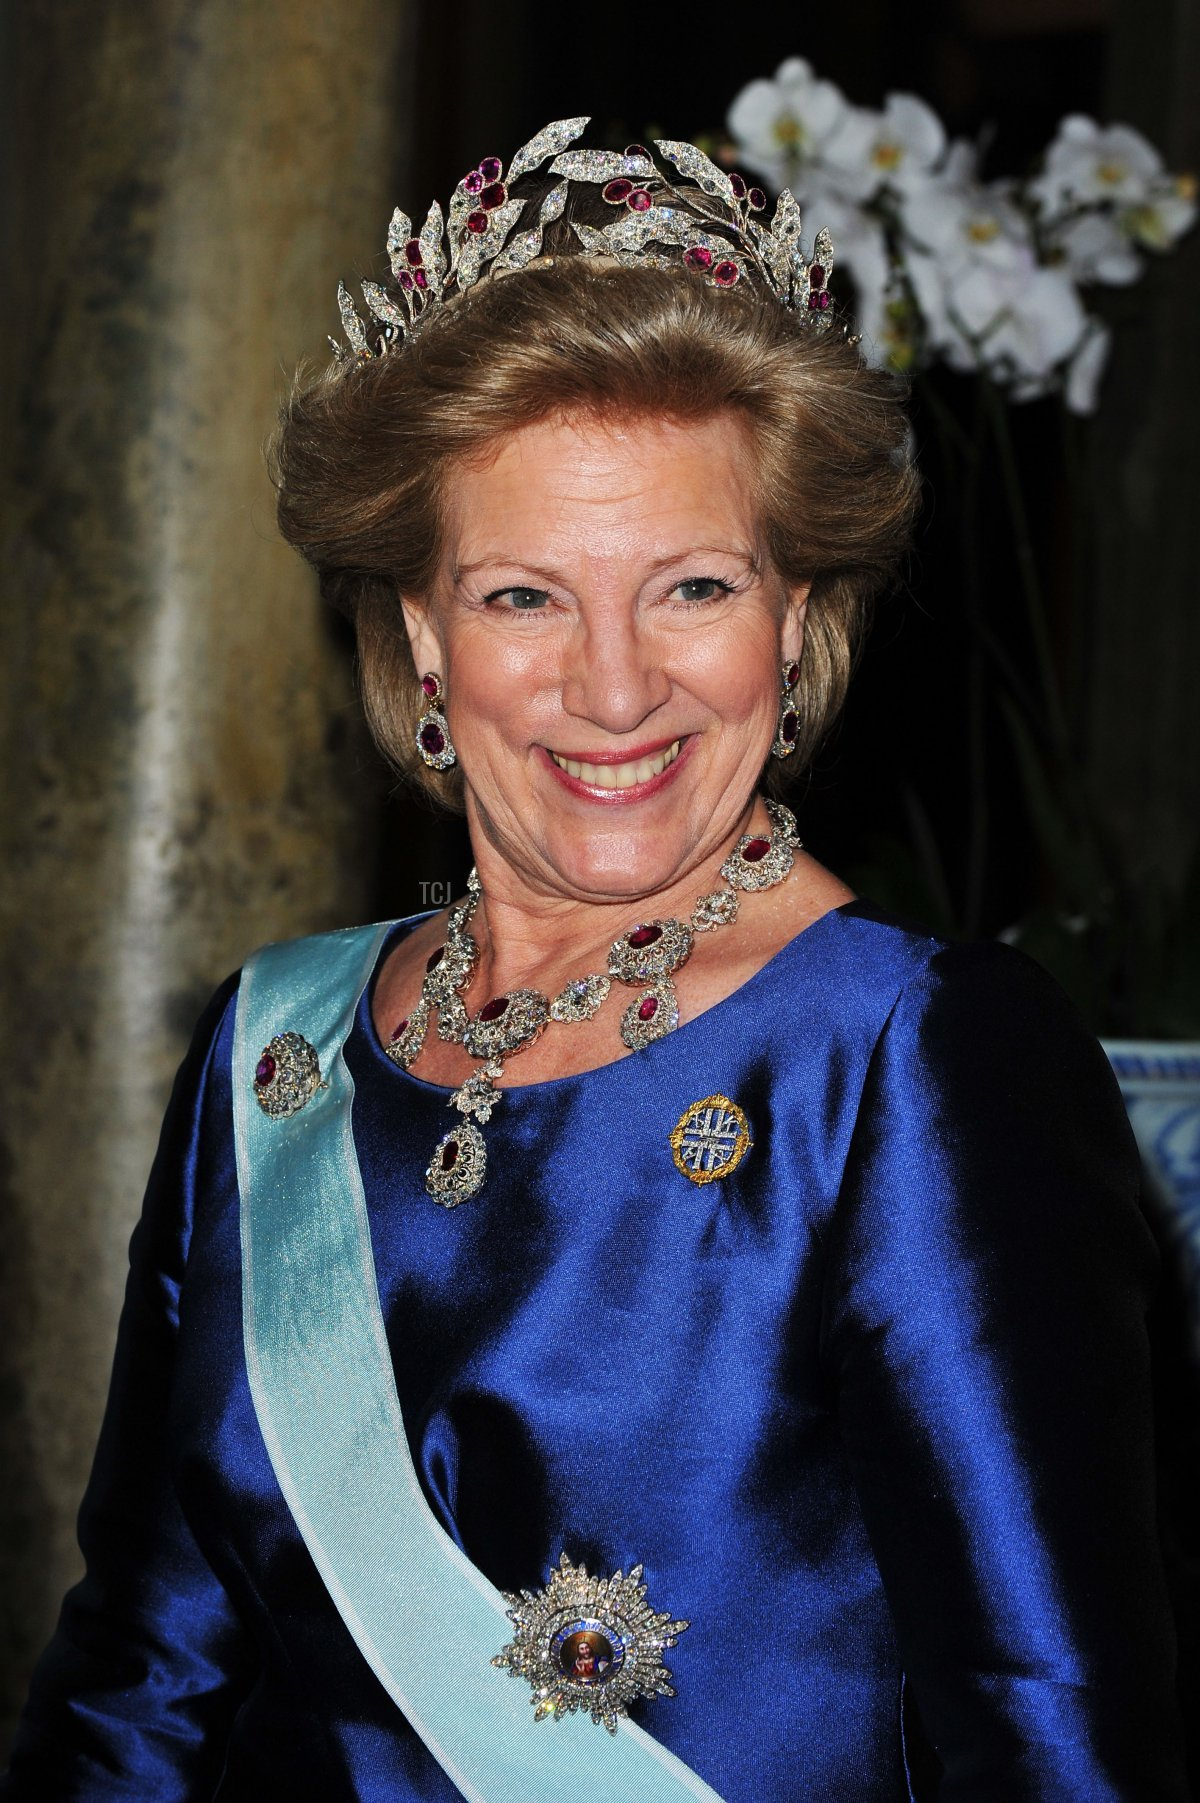 Queen Anne-Marie of Greece attends the wedding of Crown Princess Victoria and Prince Daniel of Sweden, June 2010